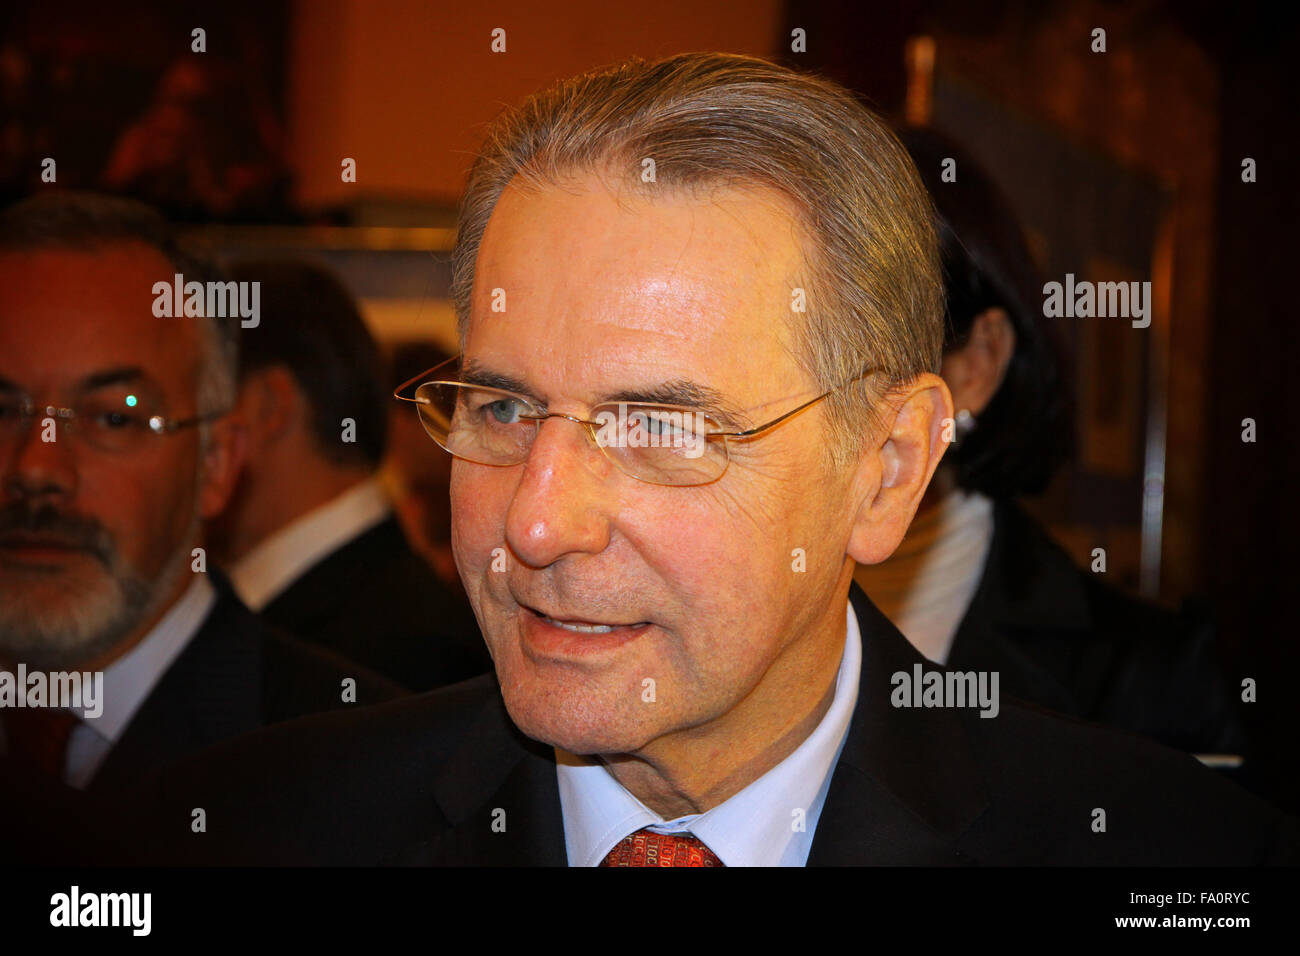 KYIV, UKRAINE - DECEMBER 17, 2010: Current President of the International Olympic Committee (IOC) Jacques Rogge - Stock Image